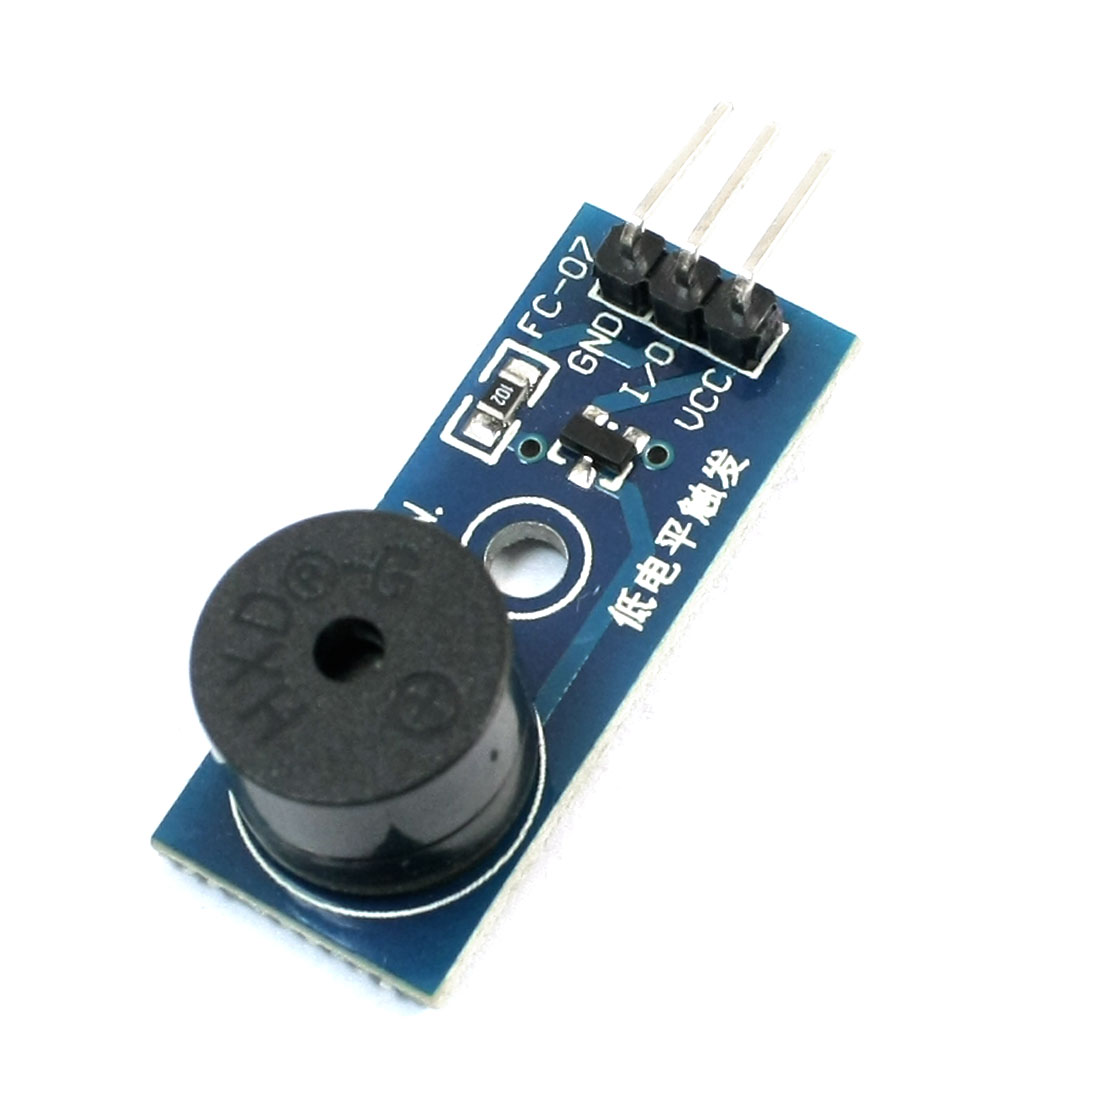 Low Level Trigger Active Buzzer Alarm Module DC 3.3-5V for MCU AVR